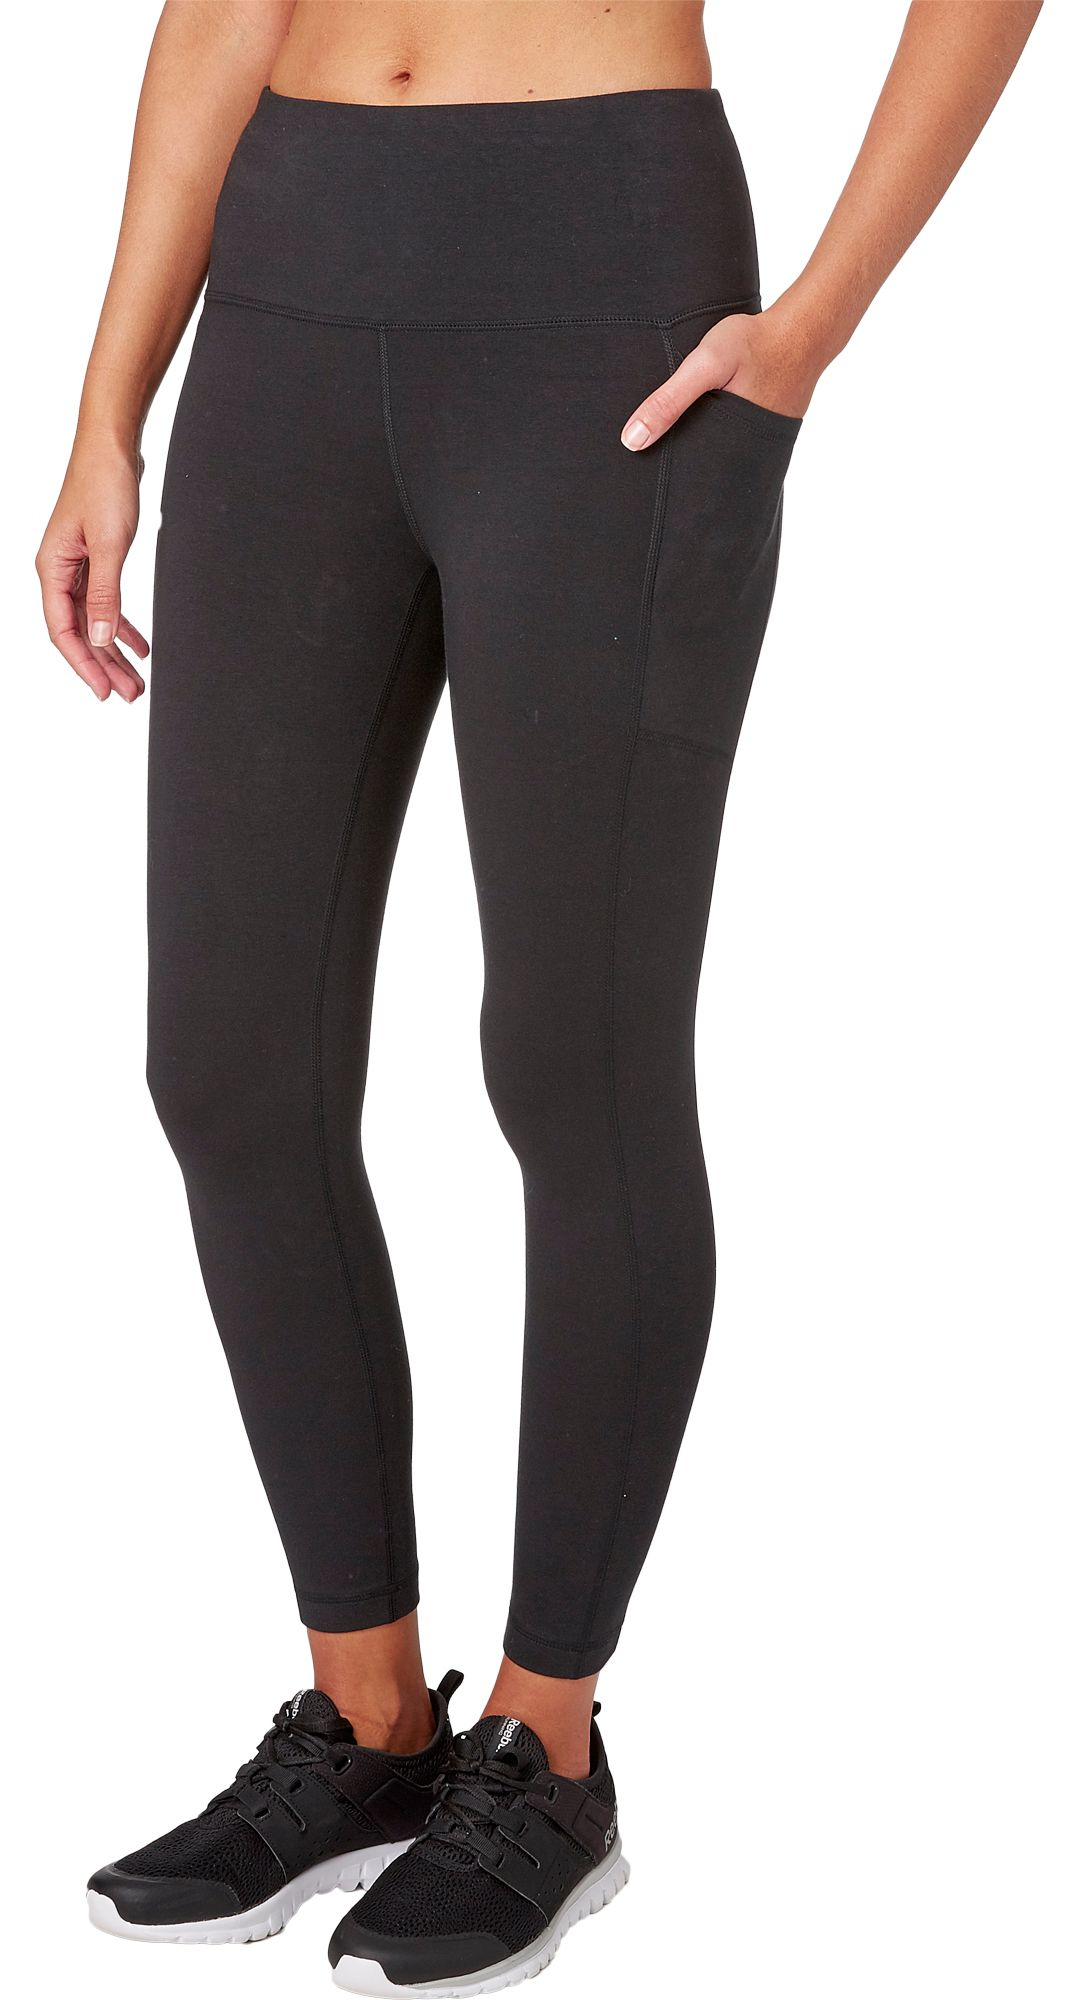 73baabe650496 Reebok Women's Stretch Cotton Ankle 7/8 Tights | DICK'S Sporting Goods